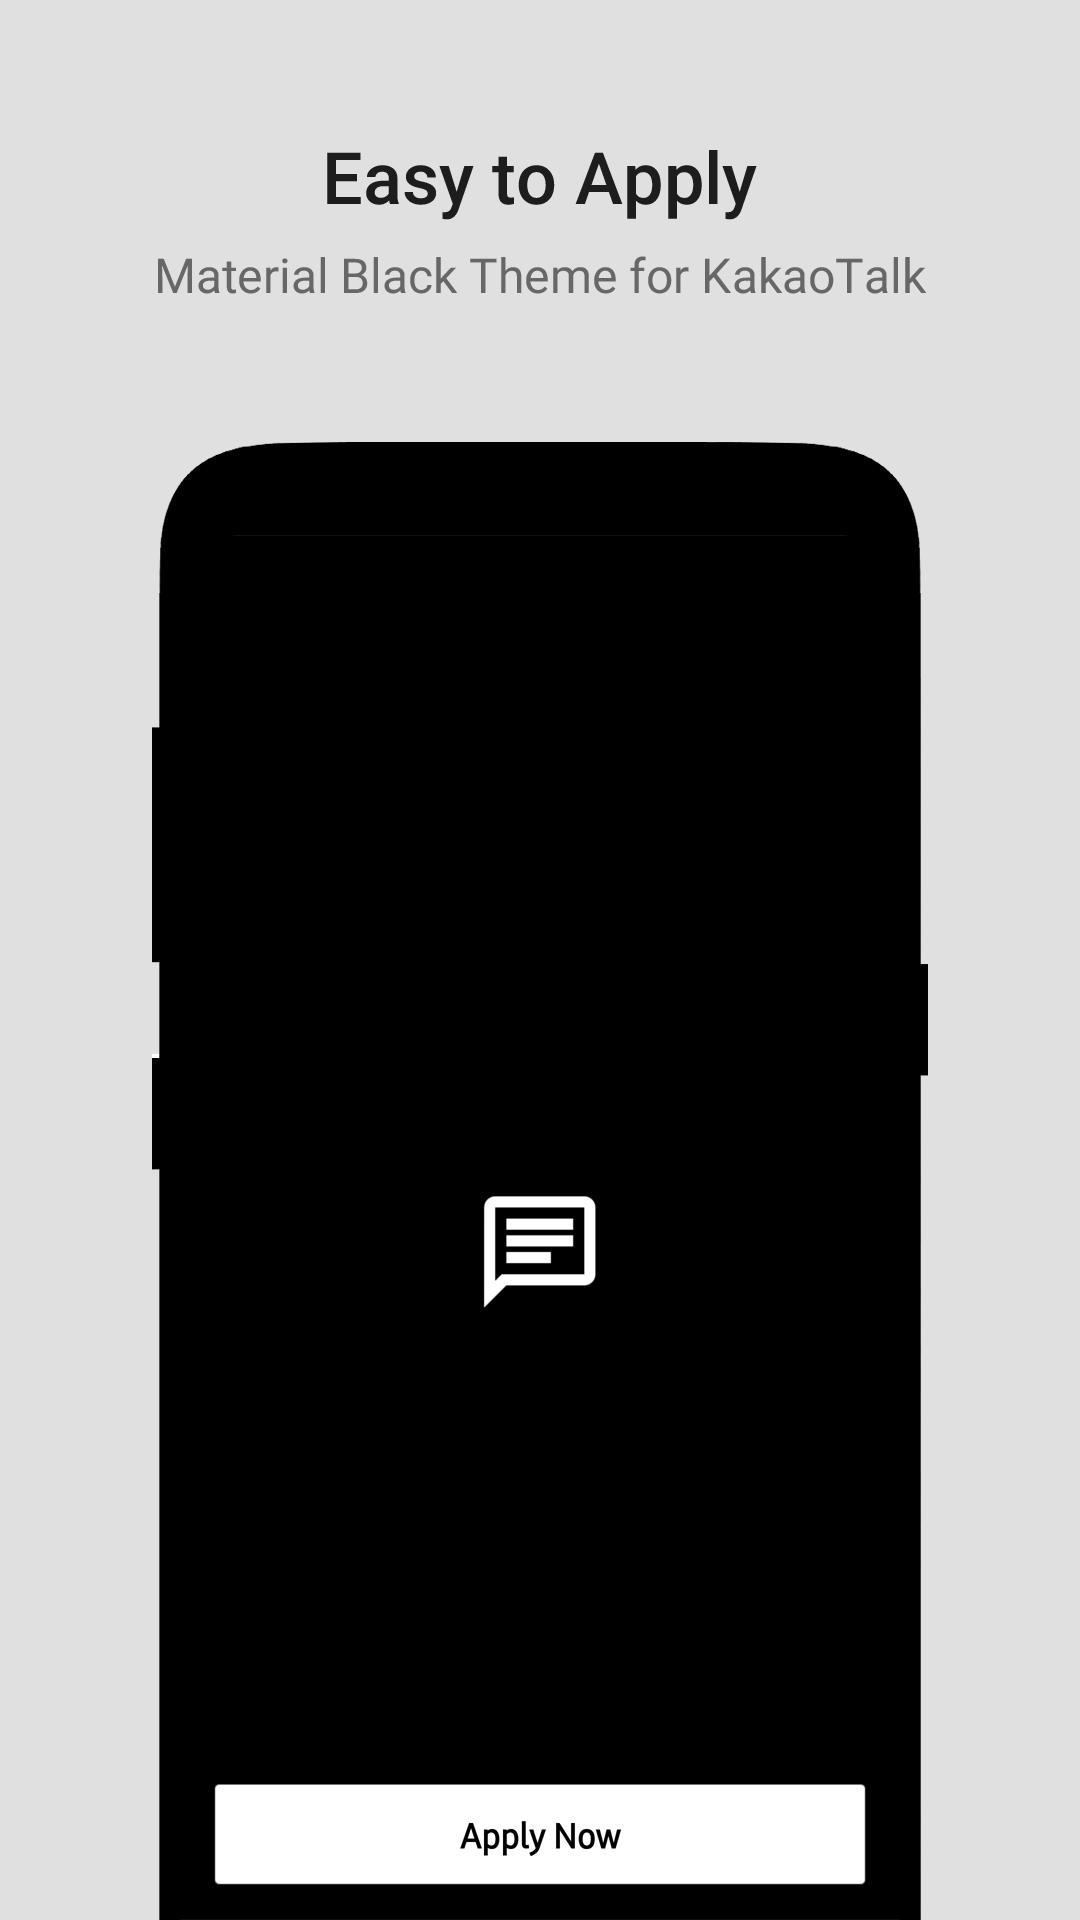 MaterialBlack-KakaoTalk Theme for Android - APK Download